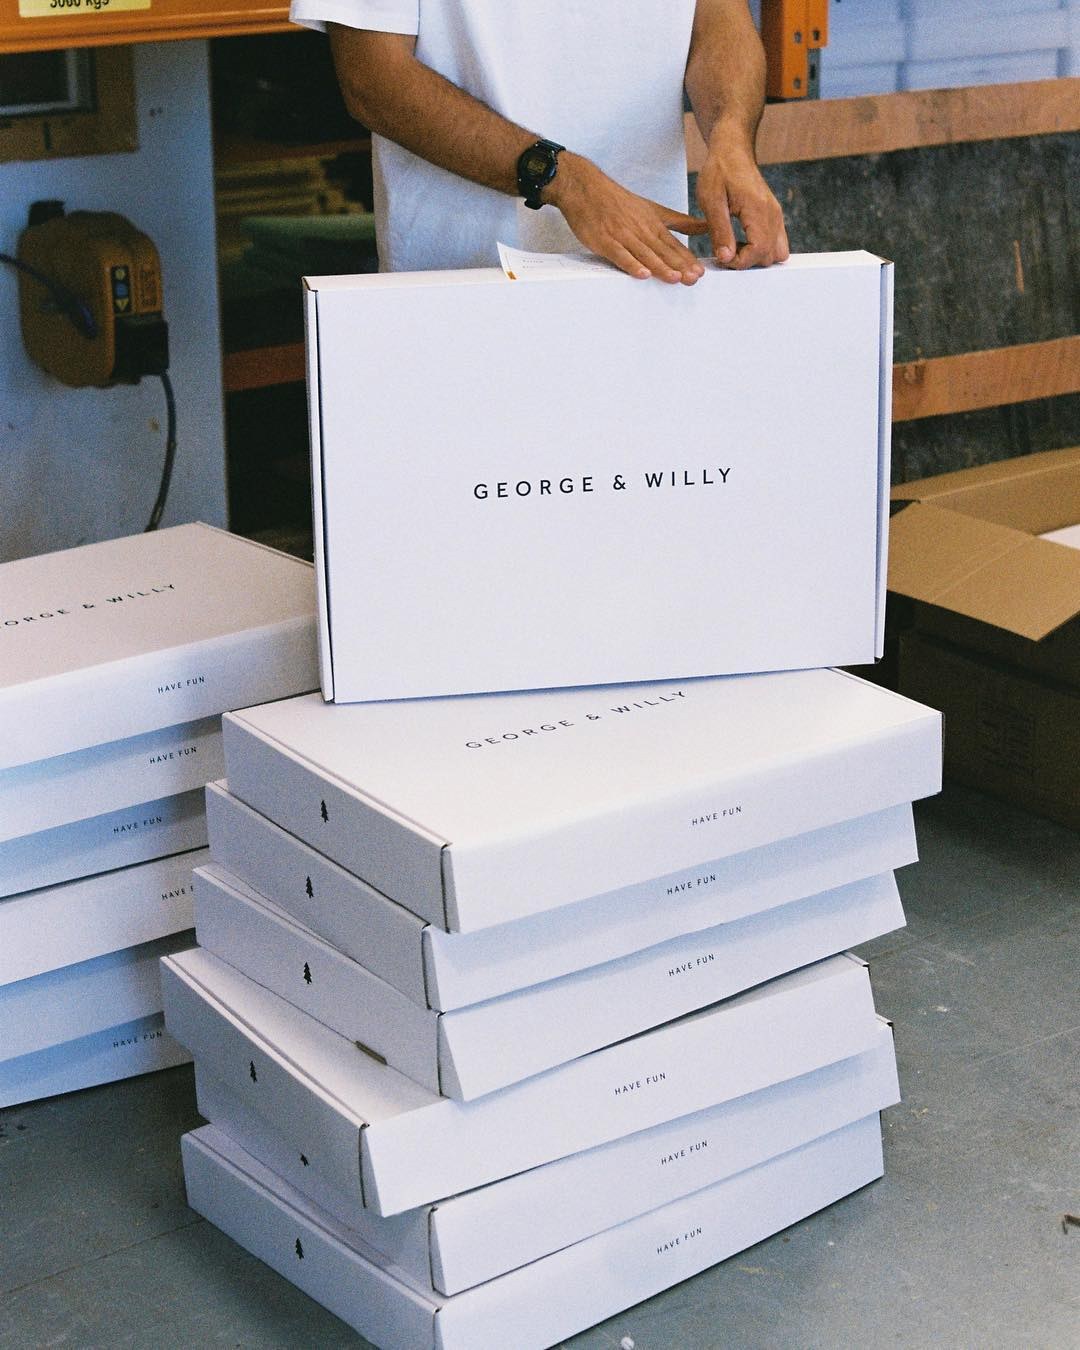 George & Willy Packaging